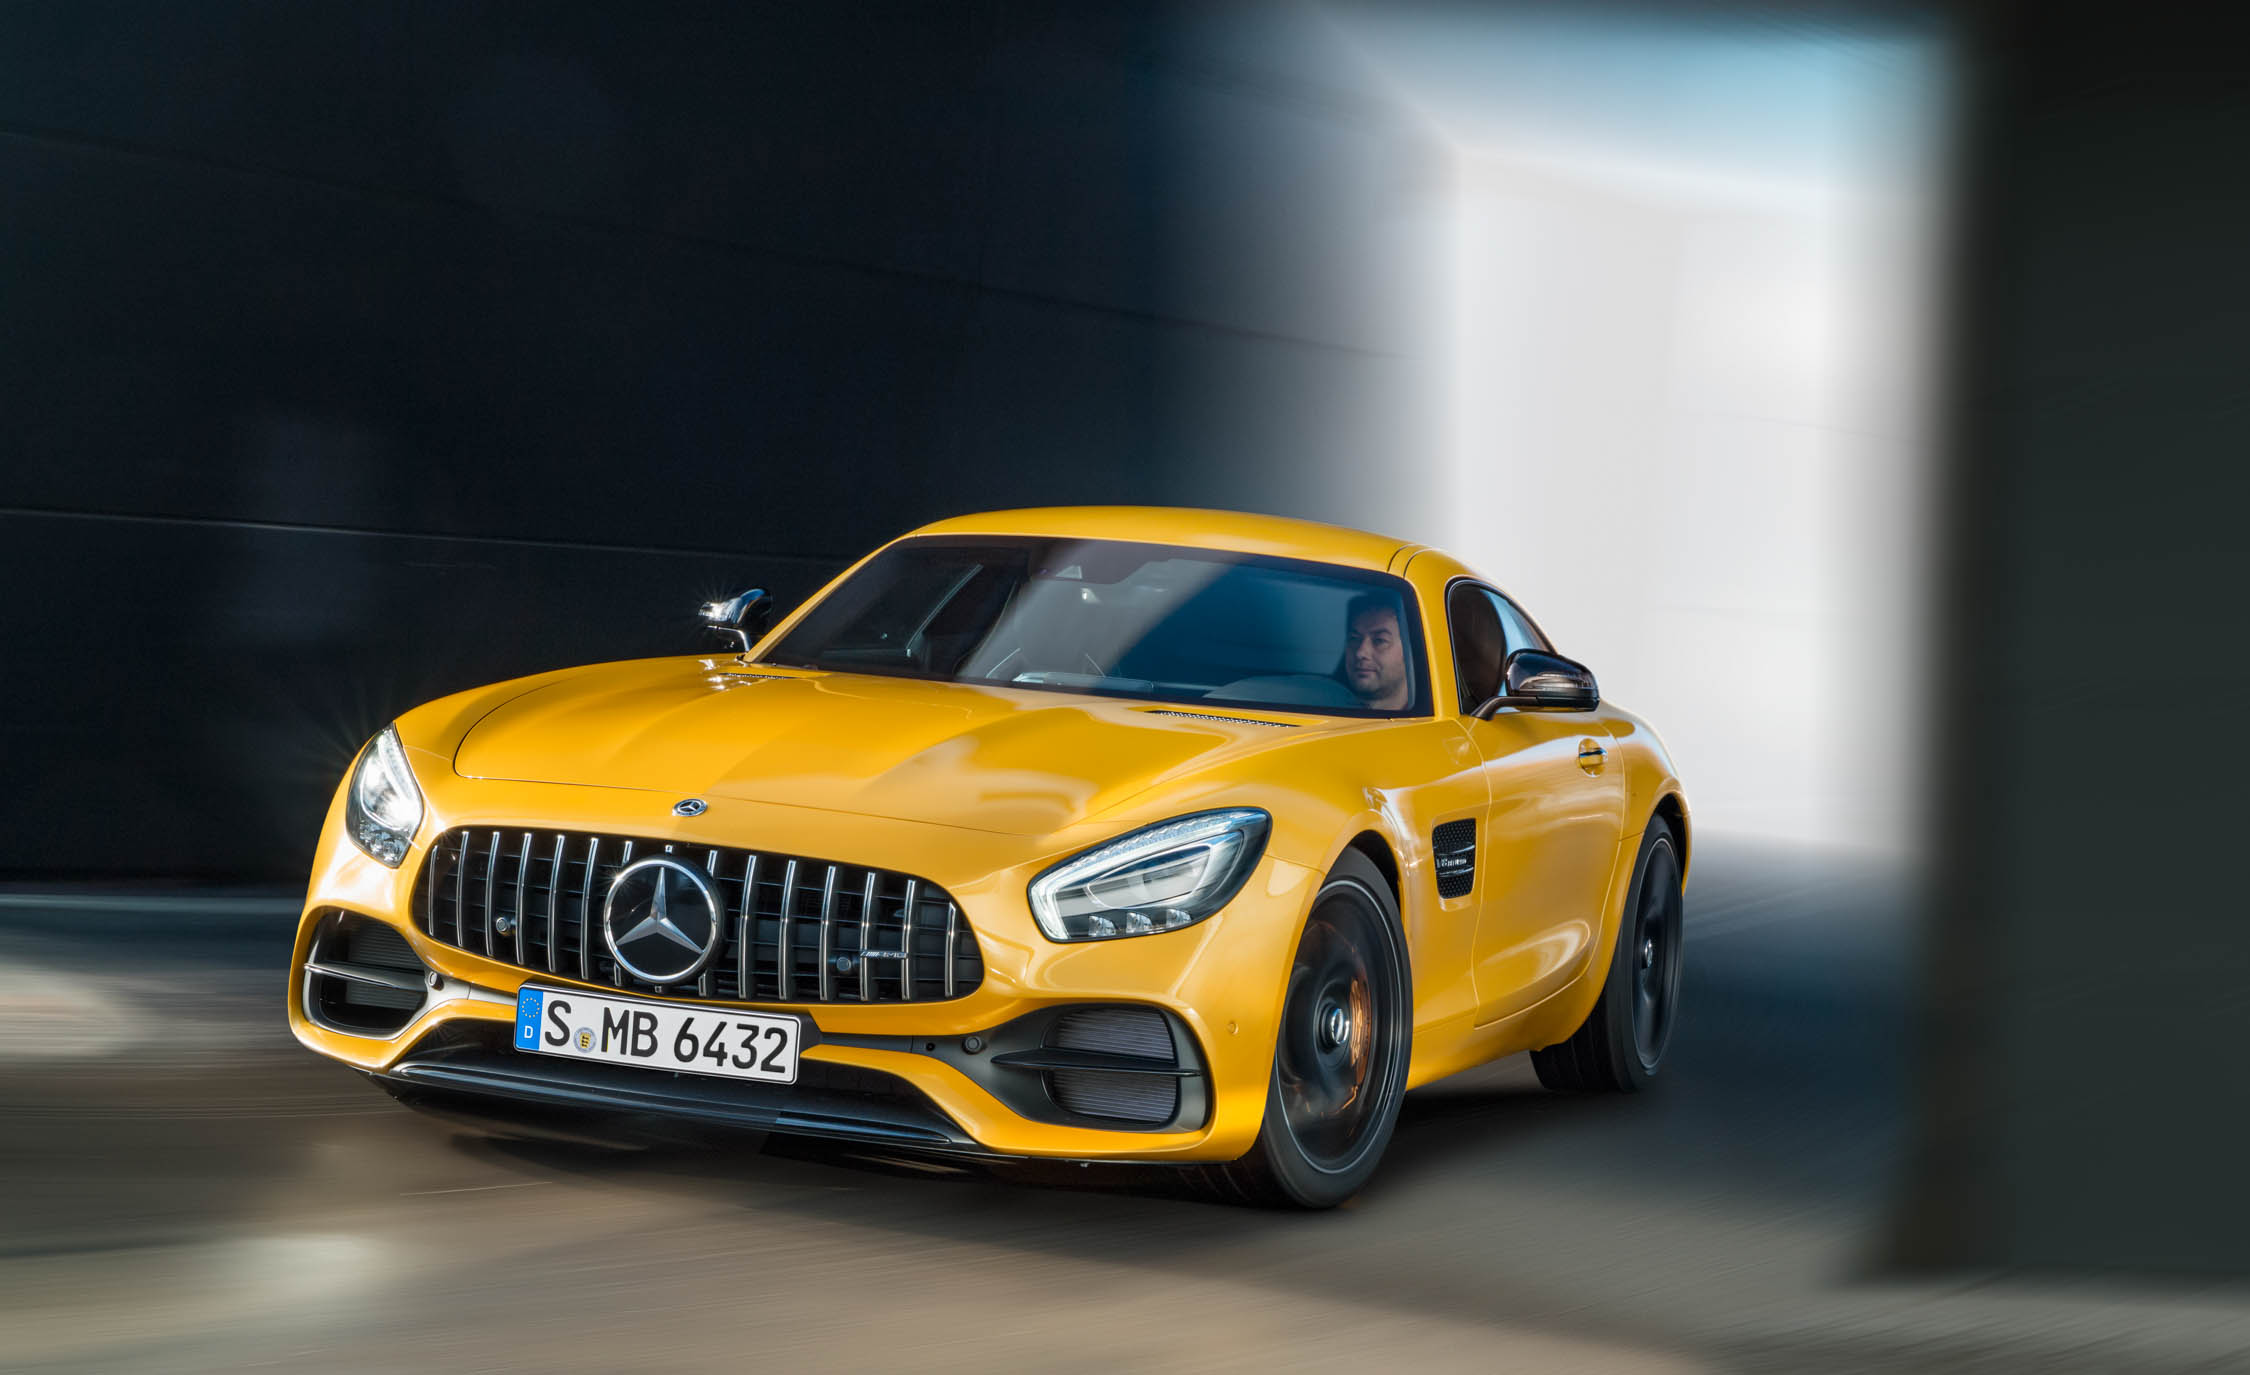 2018 Mercedes Amg Gt S Exterior Yellow (Photo 23 of 23)